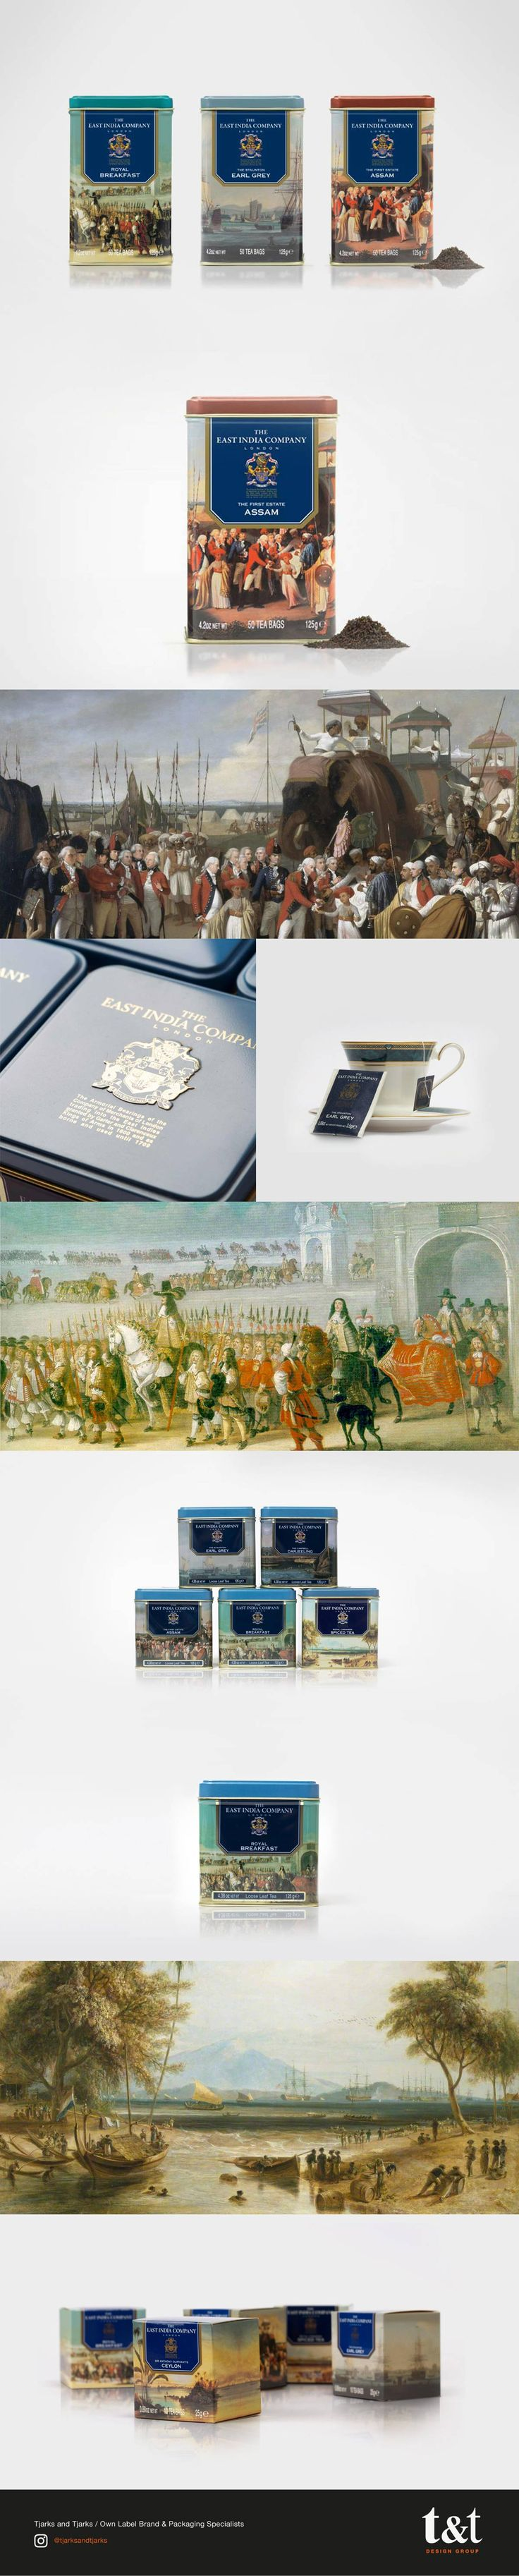 East India Company - Premium Tea Packaging Design - We were delighted when the famous East India Company briefed us to develop designs for a range of premium tea caddys. The concepts had to reflect the company's four hundred year history and rich heritage